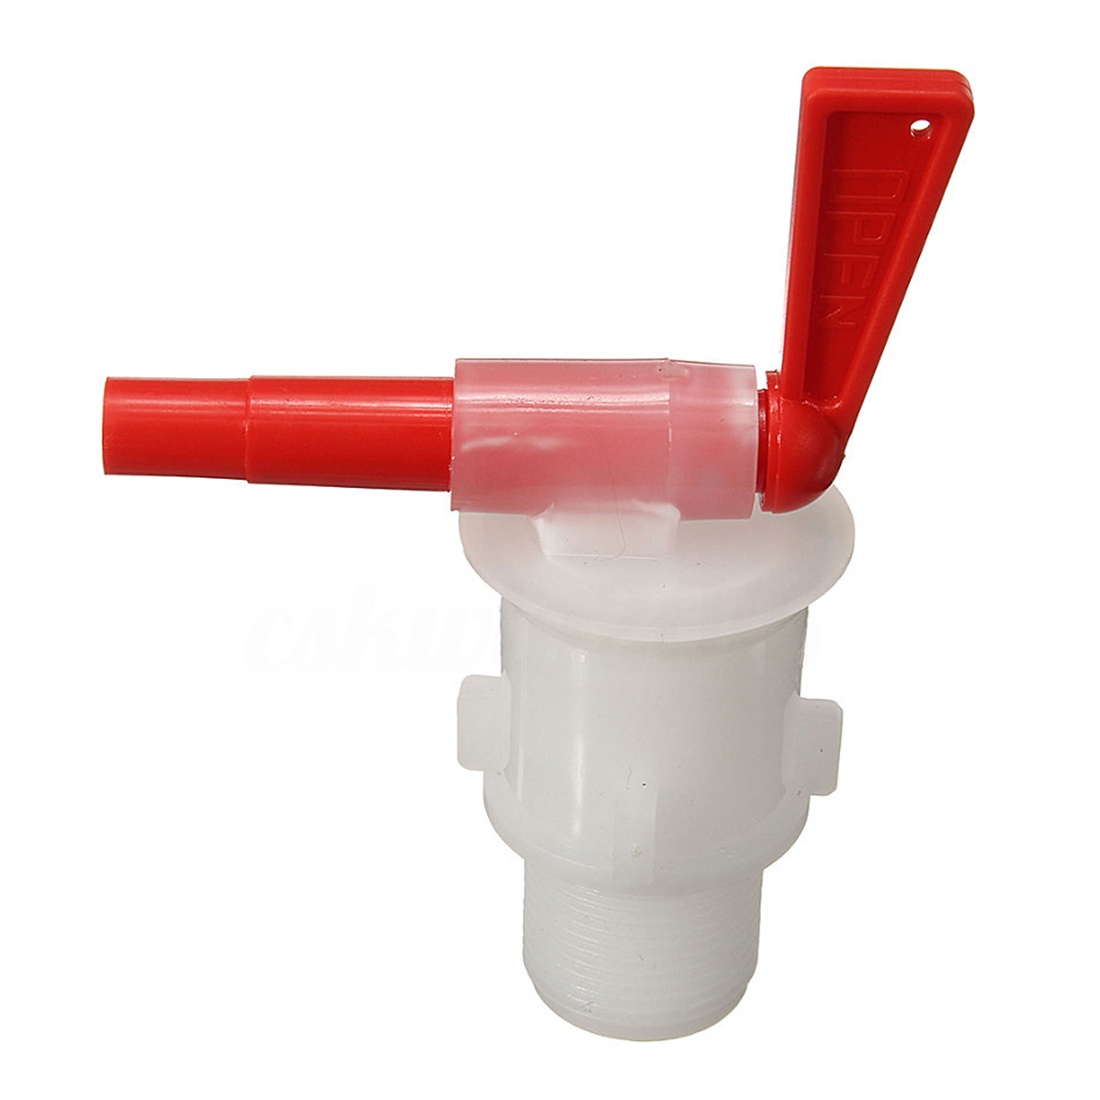 NEW-DIY Wine Beer Bottling Homebrew Bucket Barrel Plastic Spigot Tap ReplacementNEW-DIY Wine Beer Bottling Homebrew Bucket Barrel Plastic Spigot Tap Replacement